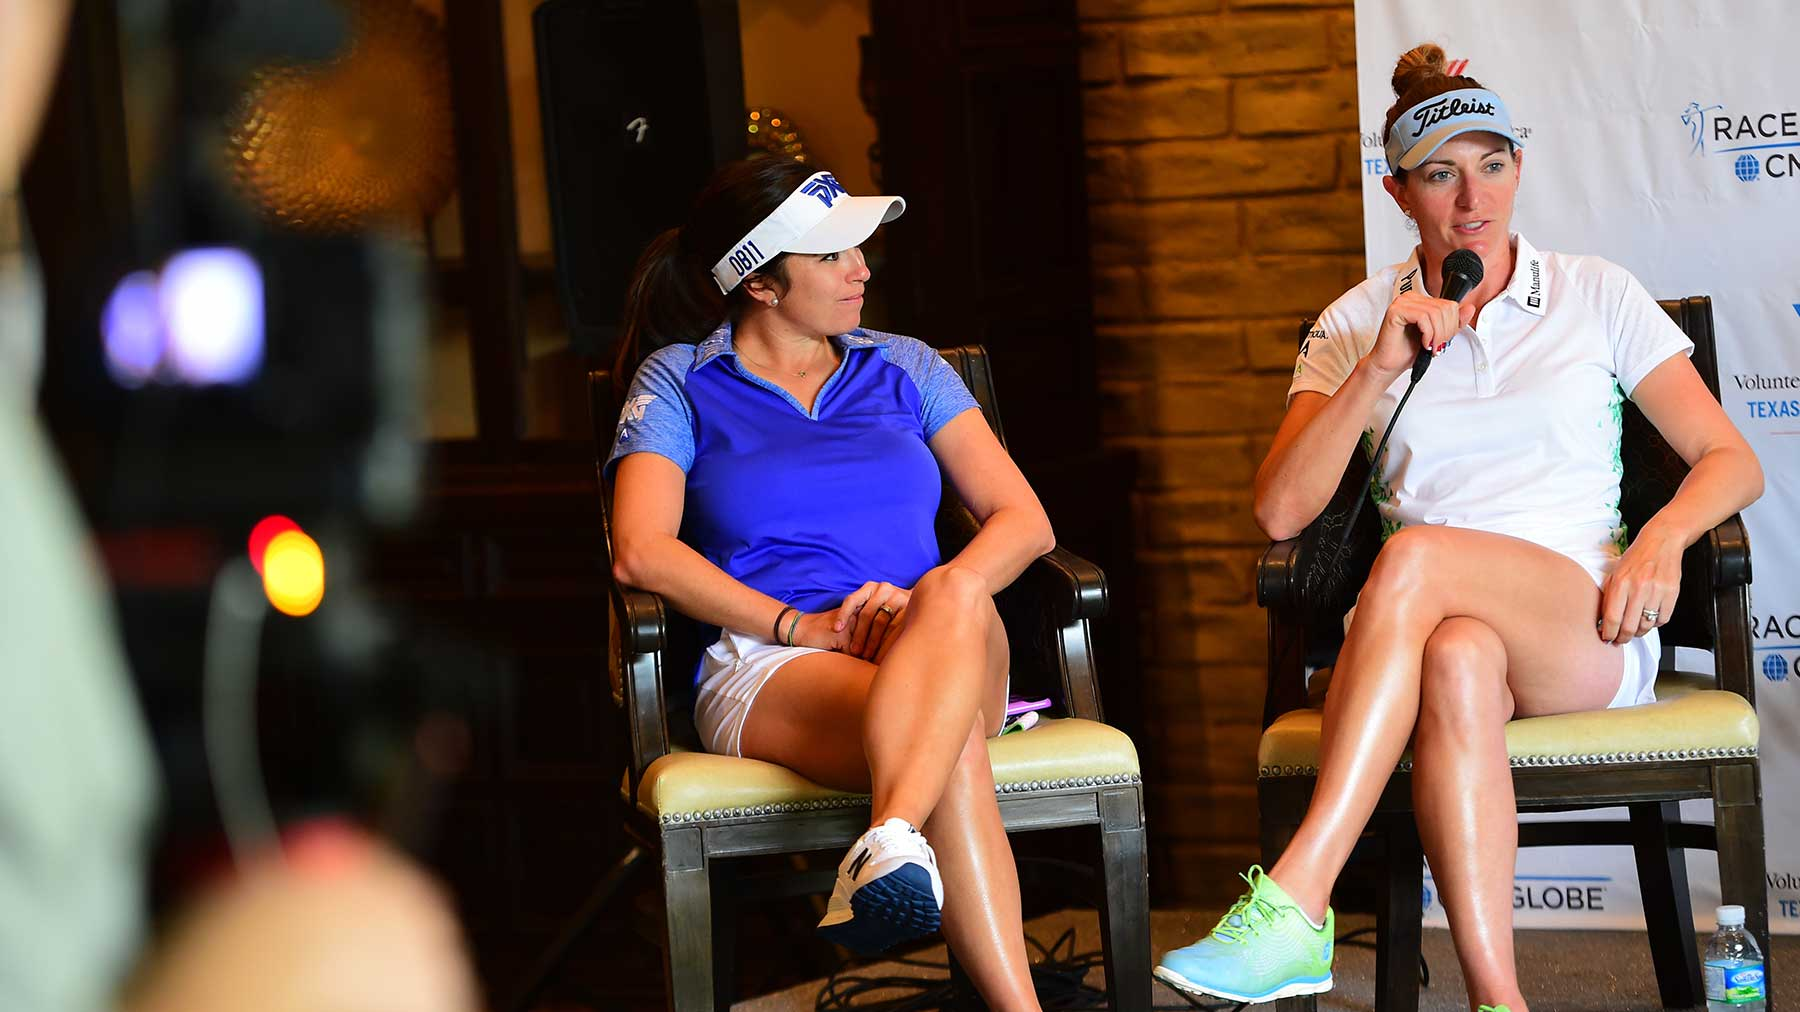 Gerina Piller (left) and Brittany Lang talk to the media before the 2016 VOA Texas Shootout Presented by JTBC